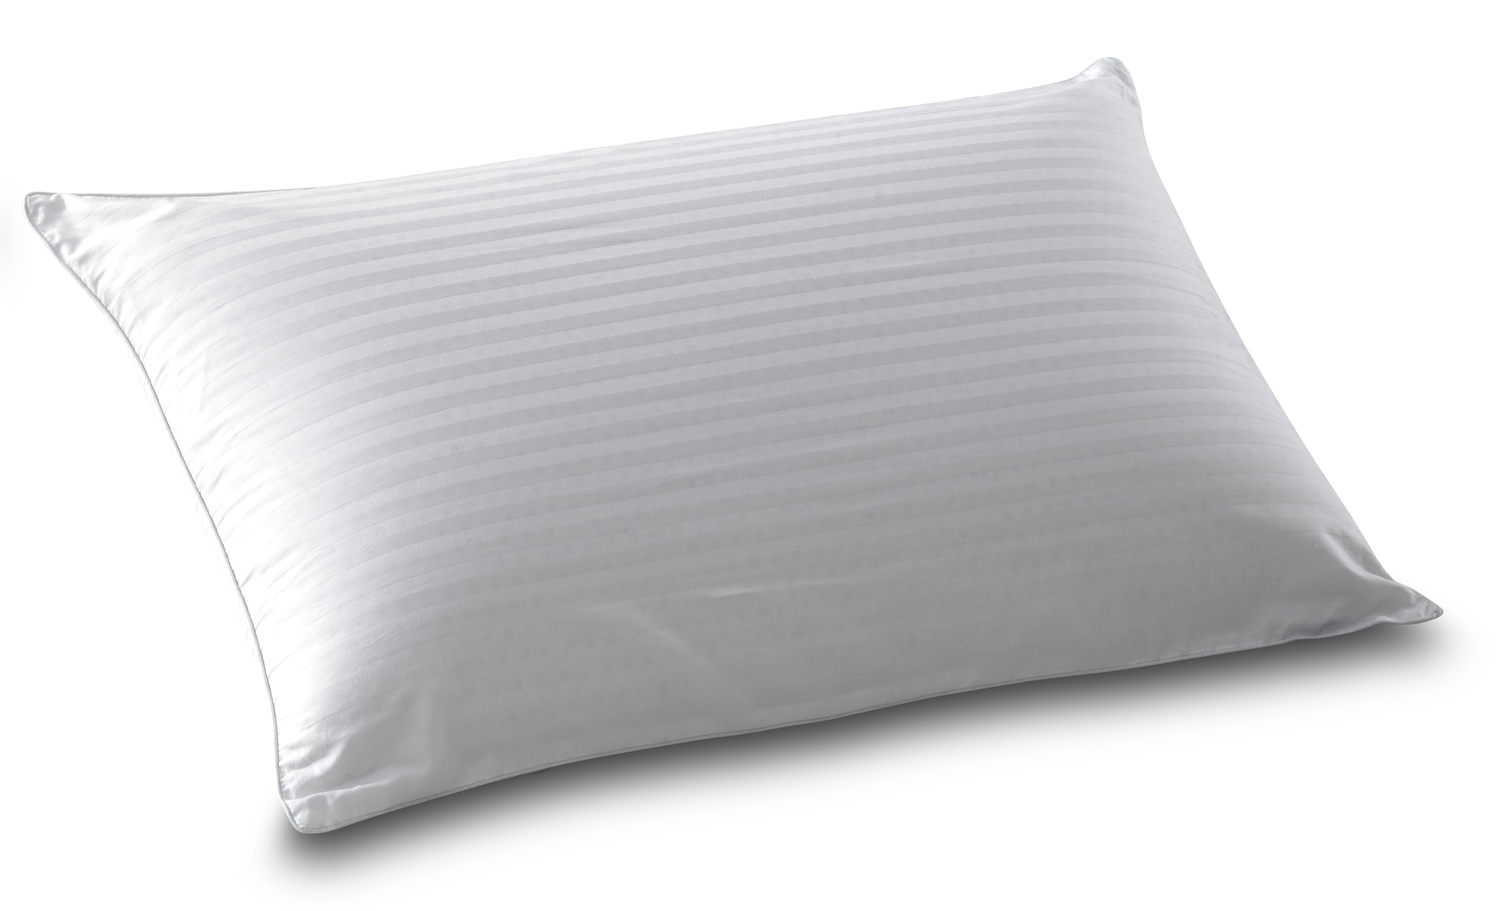 dunlopillo super comfort latex pillow from. Black Bedroom Furniture Sets. Home Design Ideas